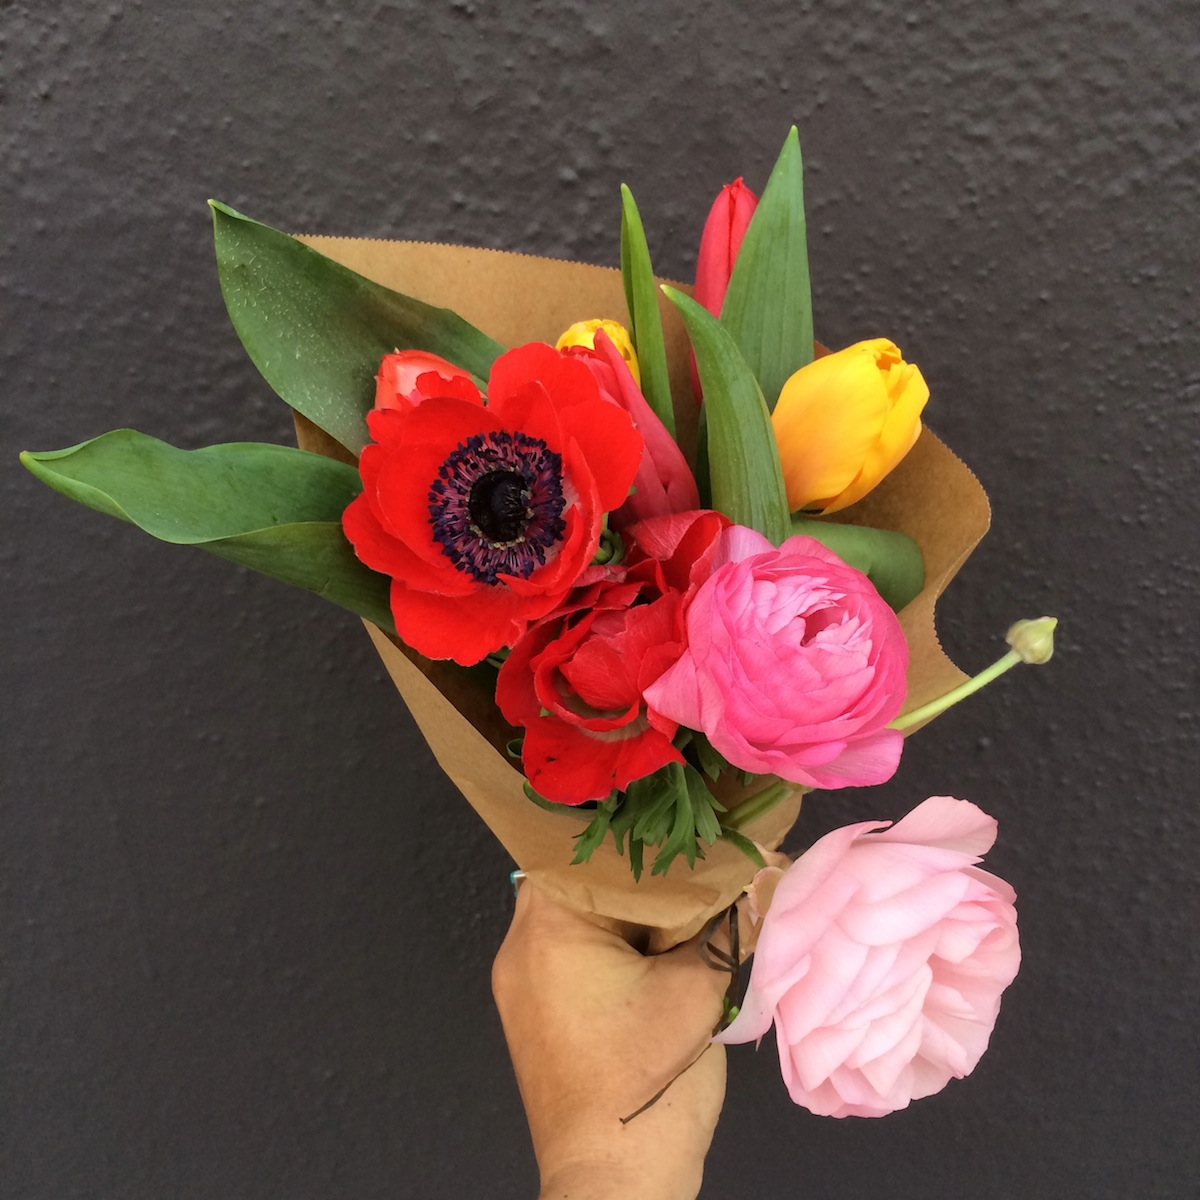 Raunculus and tulips in hipster bridal bouquet